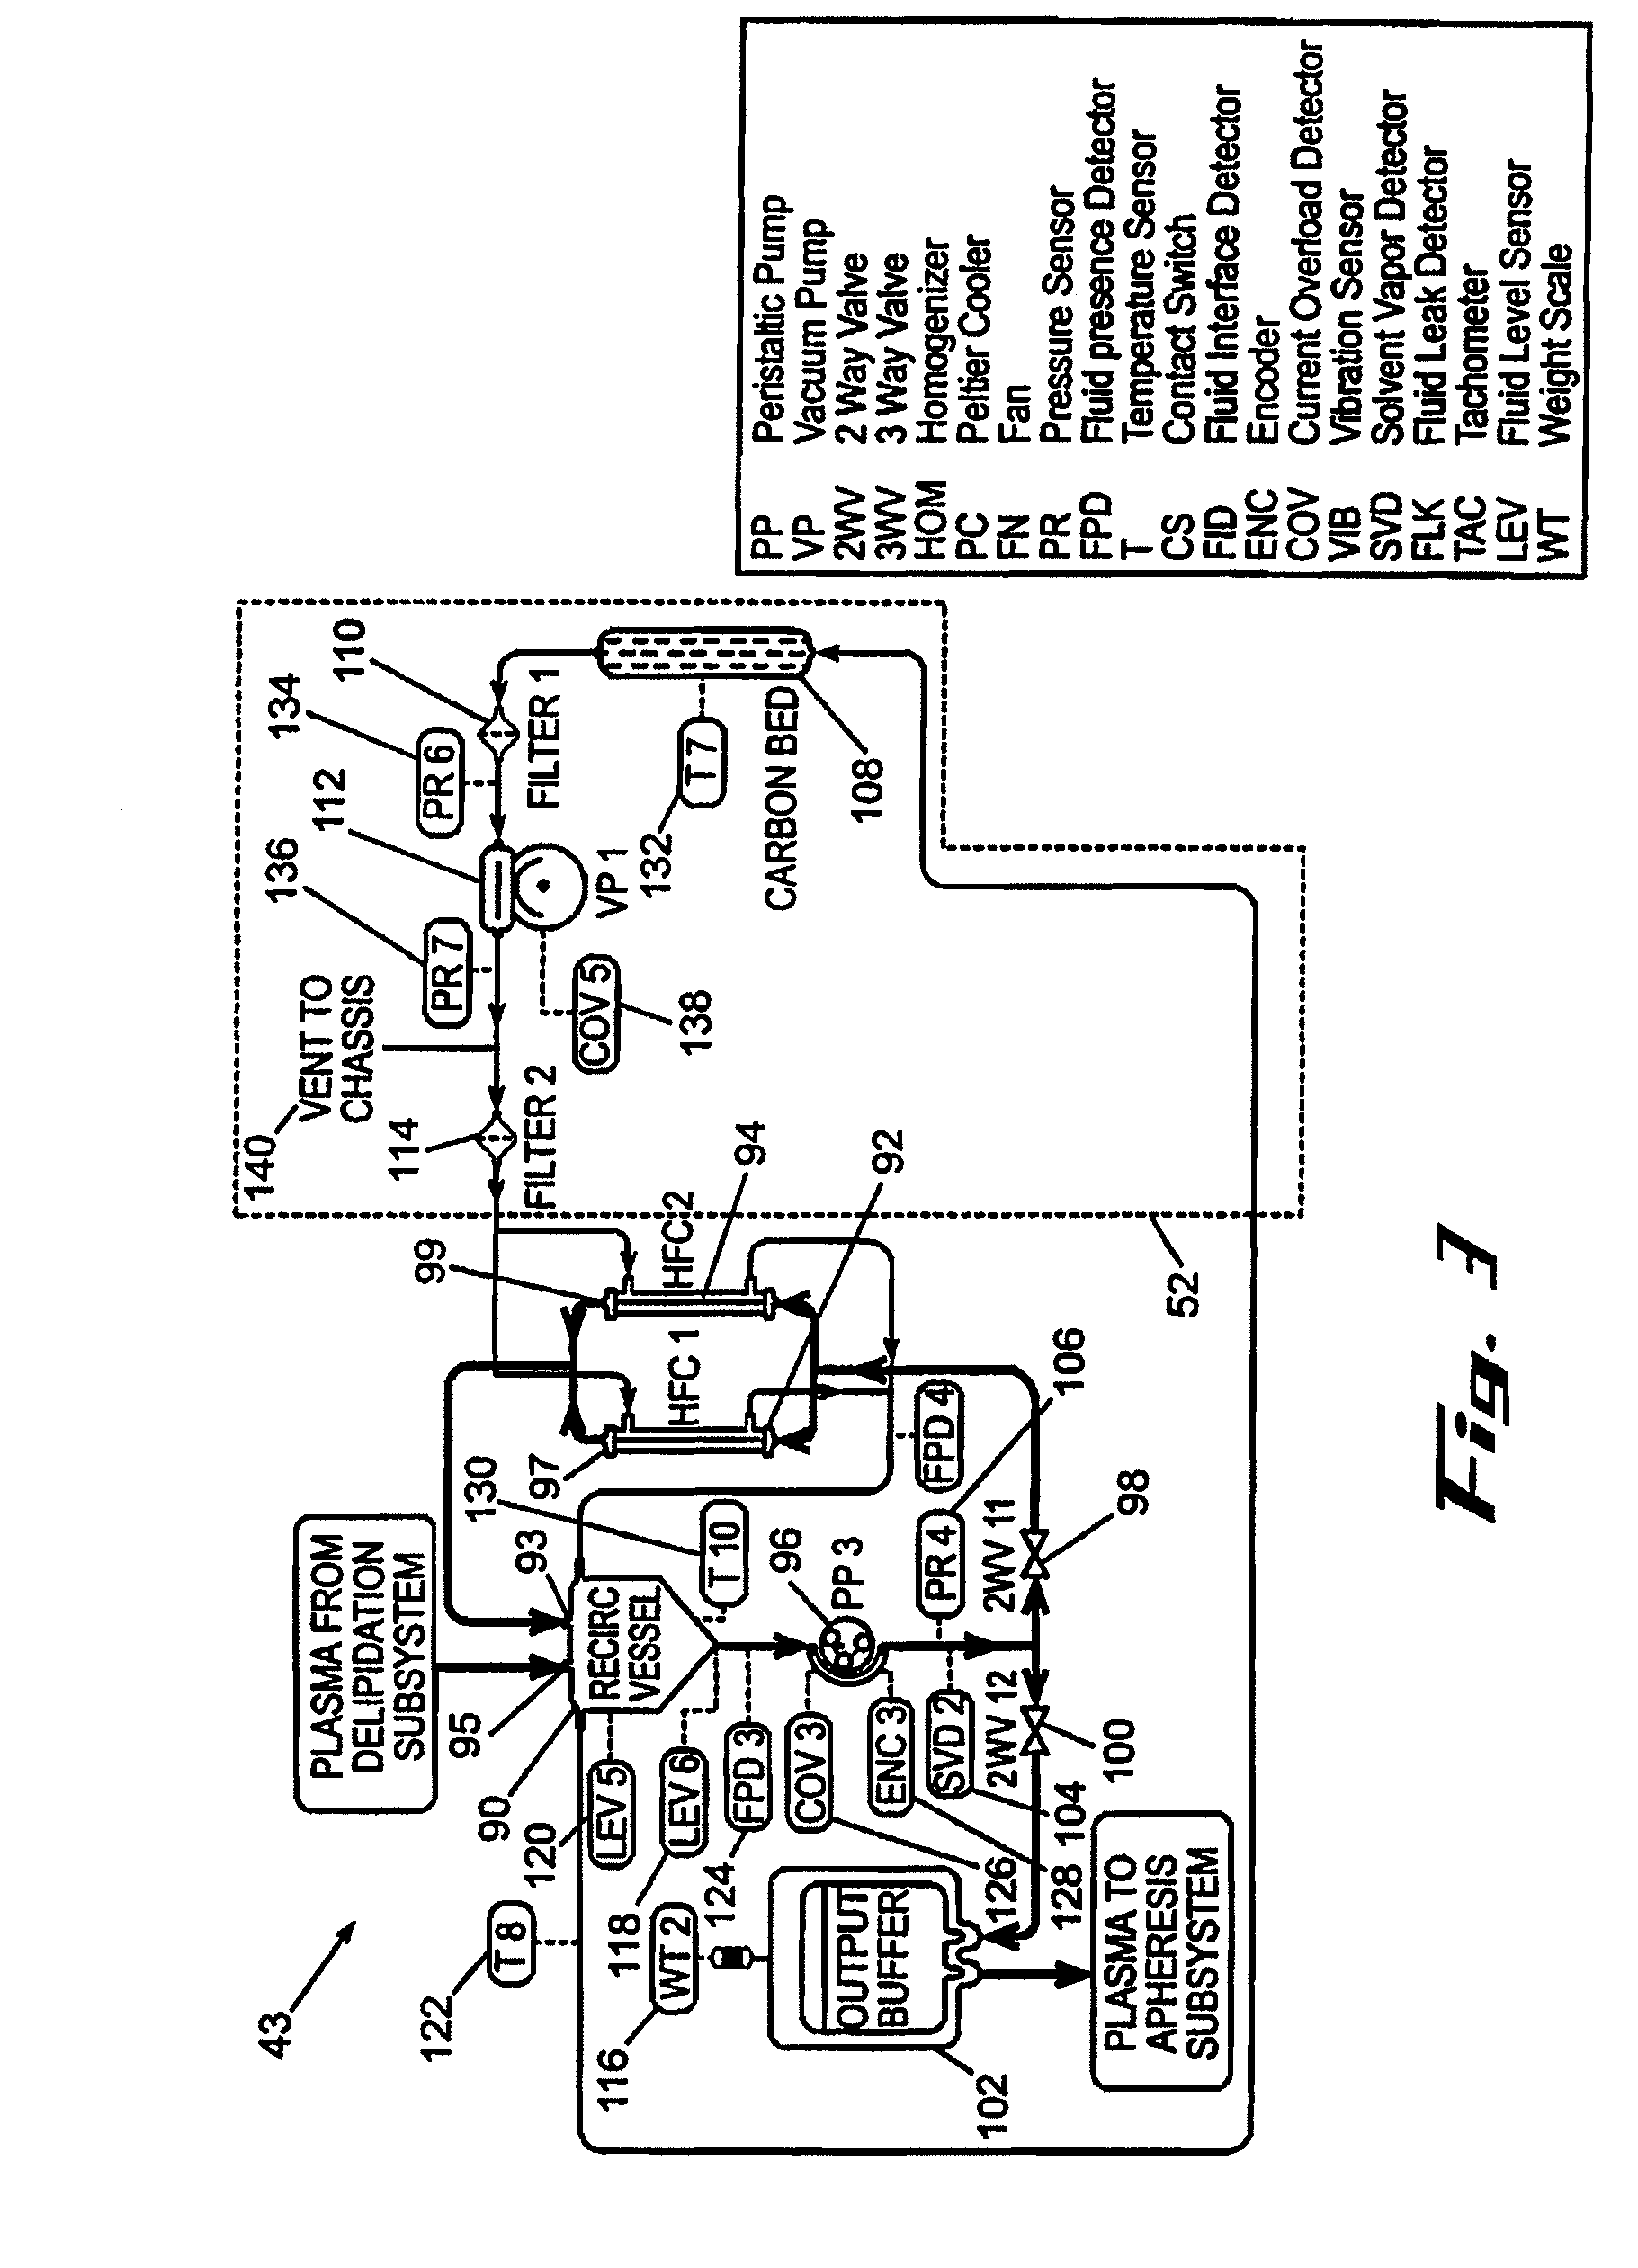 patent us20090032468 methods for removal of lipids from fluids 2 Stroke Motor Oil patent drawing